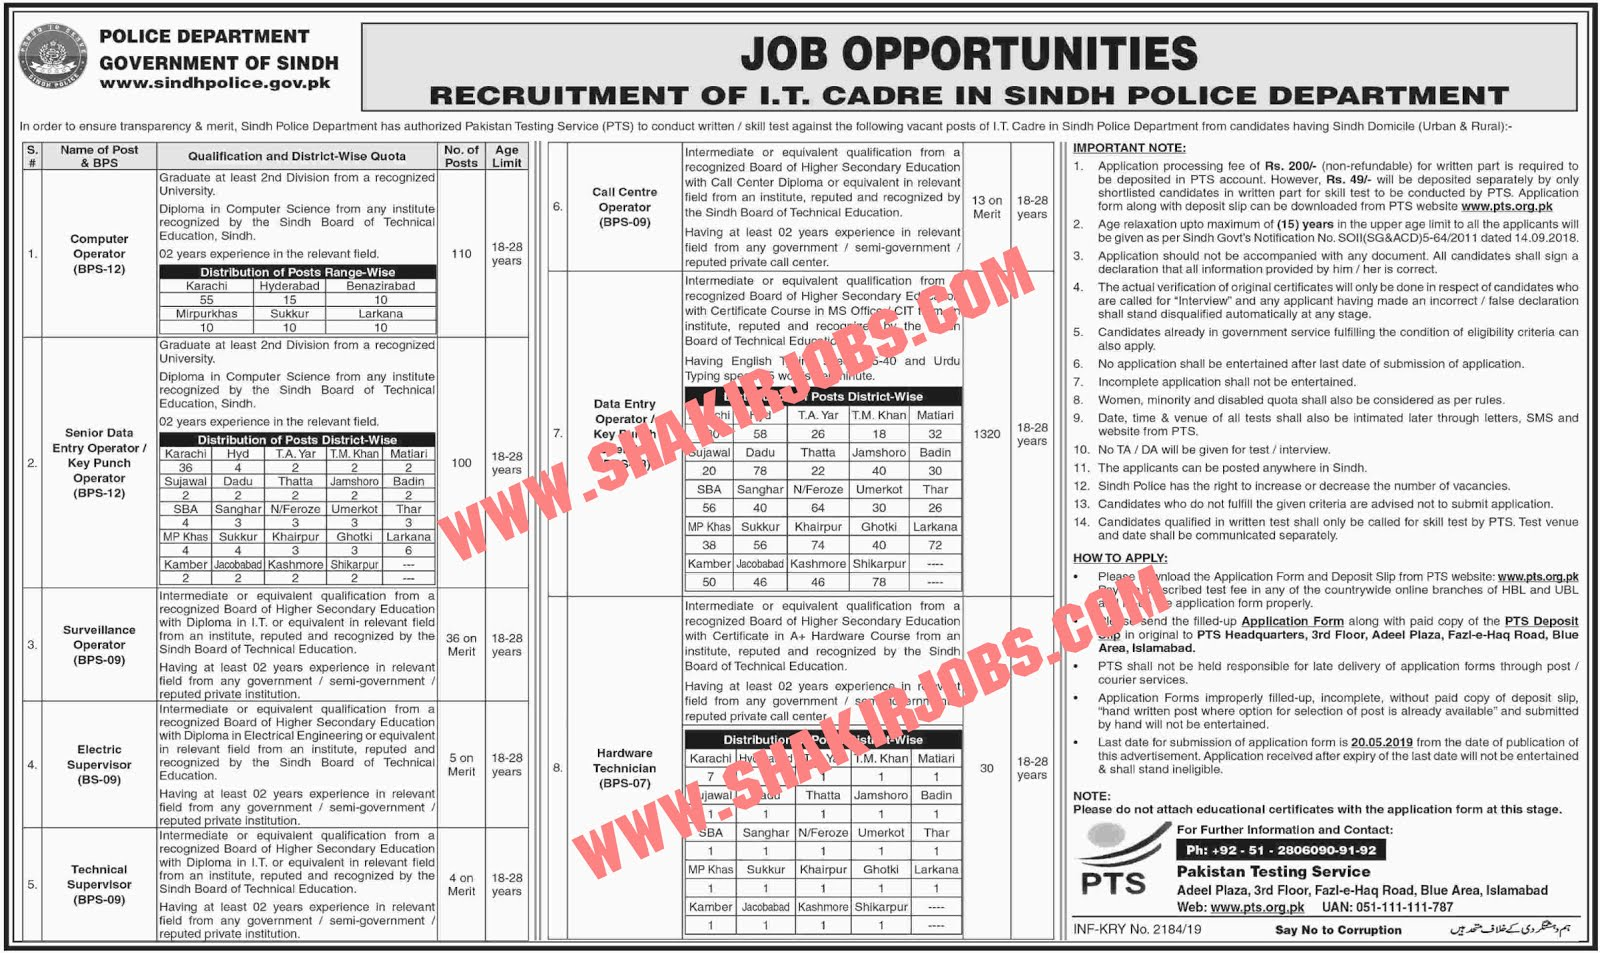 sindh police jobs,sindh police jobs 2019,sindh police,police jobs 2019,jobs in sindh police,police,sindh police jobs 2019 pts,police jobs,jobs,sindh police department,sindh police pts jobs,sindh police it jobs,sindh police today jobs,sindh police it cadre jobs 2019,sindhi police jobs,sindh police jobs 2019 karachi,sindh jobs,sindh government police jobs 2019,punjab police jobs 2019